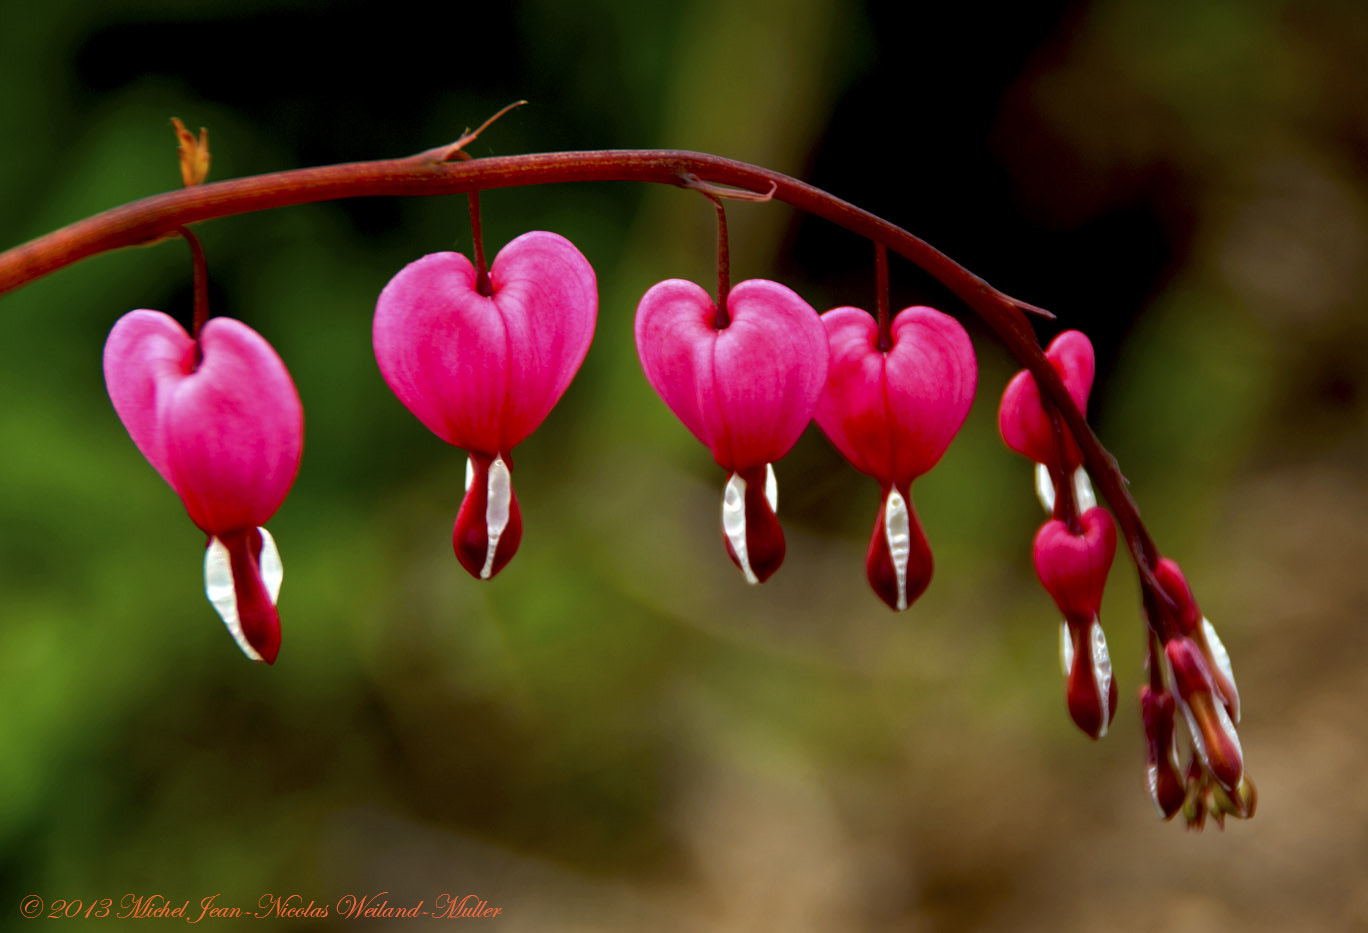 Photograph Coeurs de Marie - Dicentra Spectabilis  by Michel Jean-Nicolas Weiland-Muller on 500px